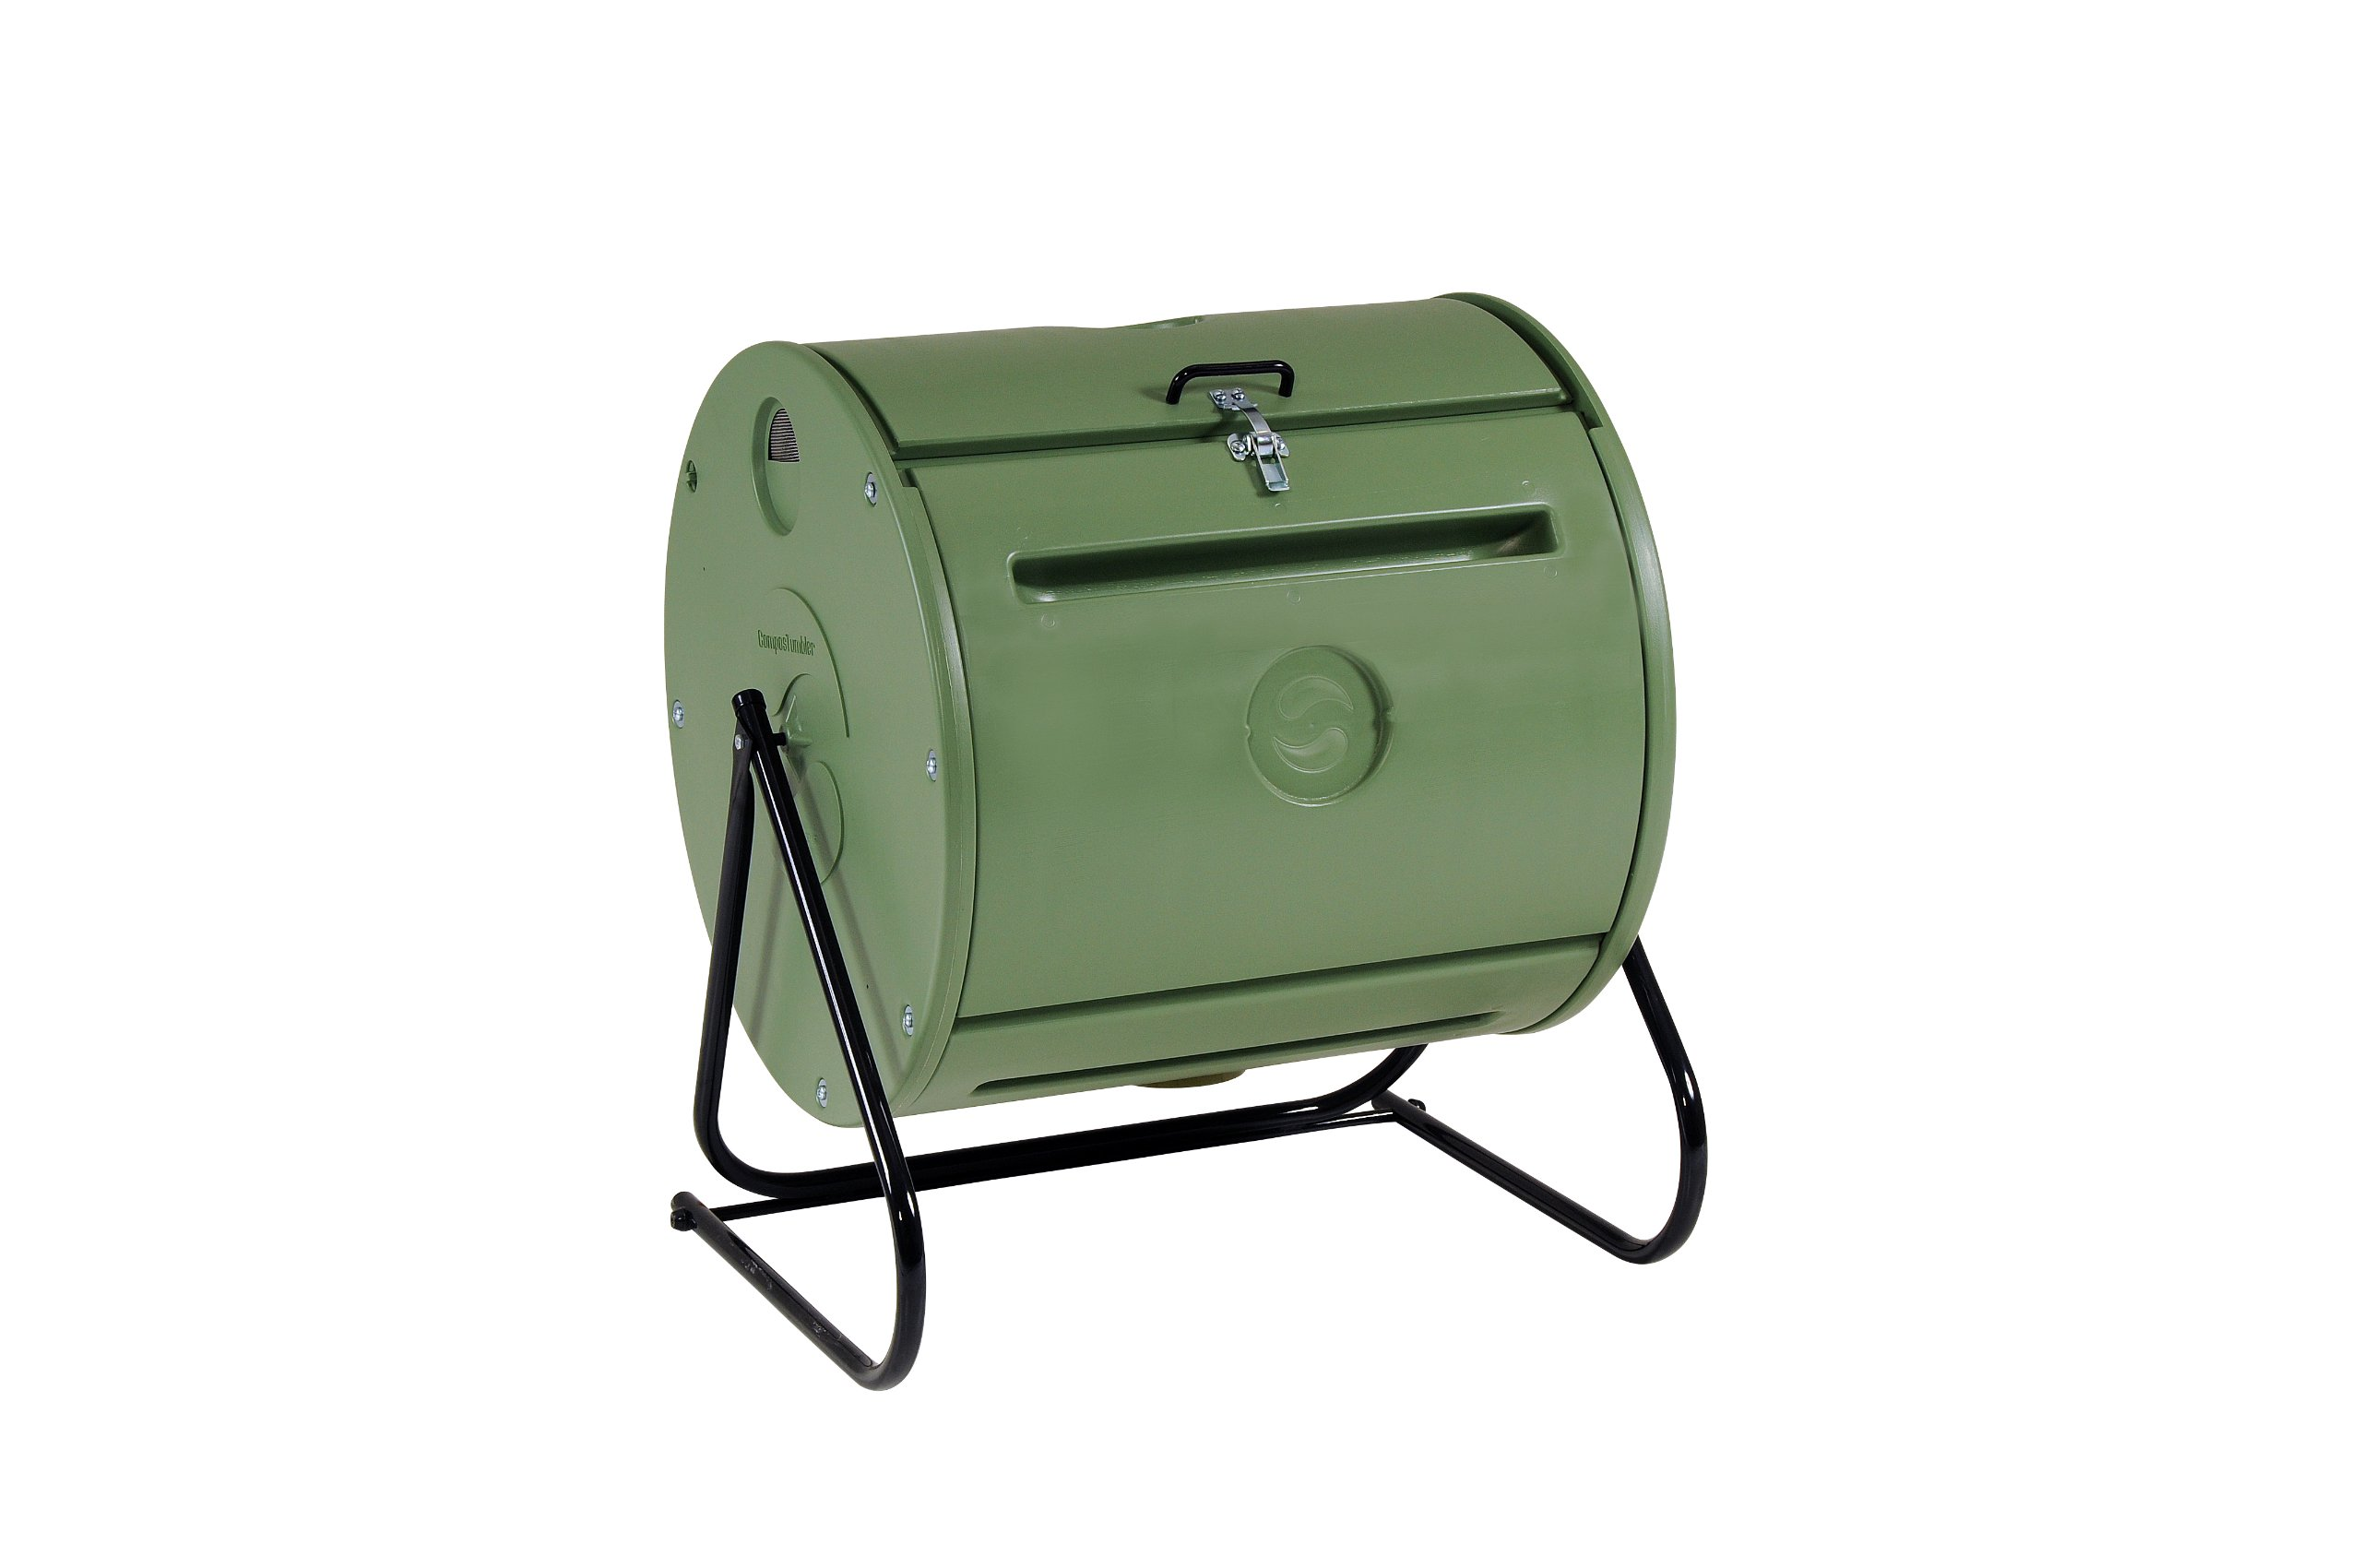 Mantis Easy Spin ComposTumbler CT09001 - Engineered to Make Compost Fast - Holds 37 Gallons - Low Cost per Gallon - Turns Easily - Fits Anywhere by Mantis